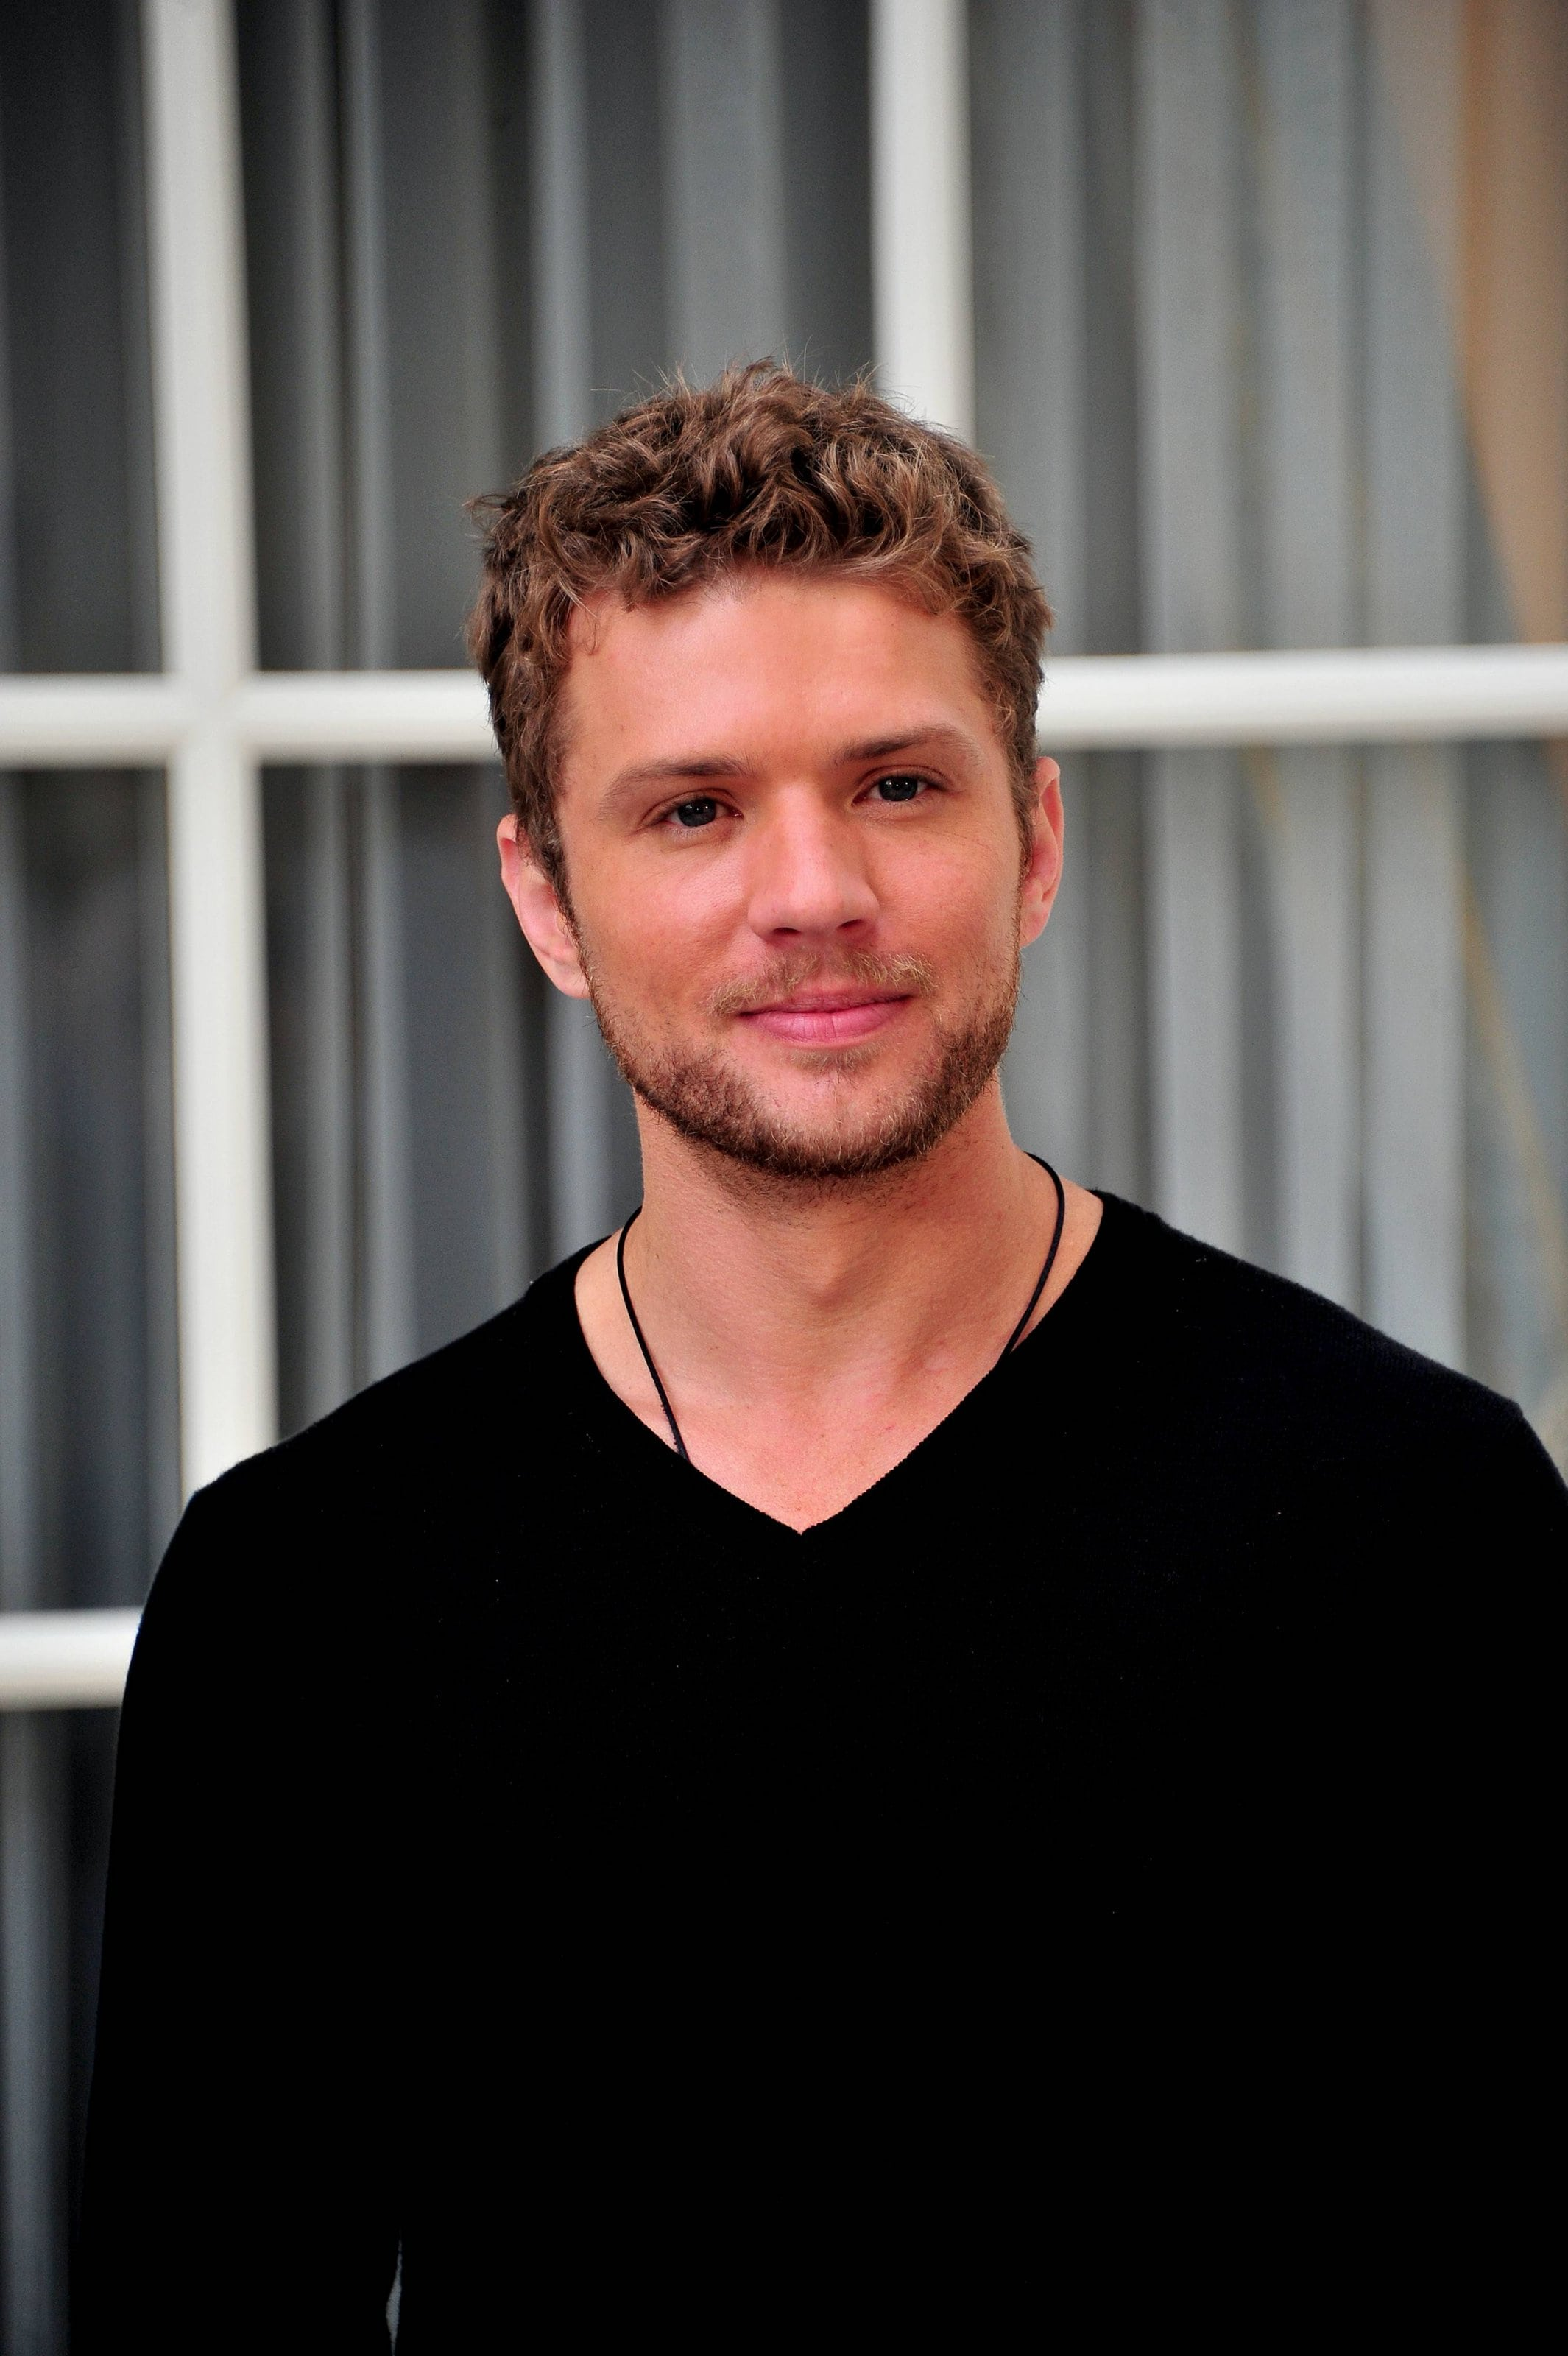 Ryan Phillippe For mobile